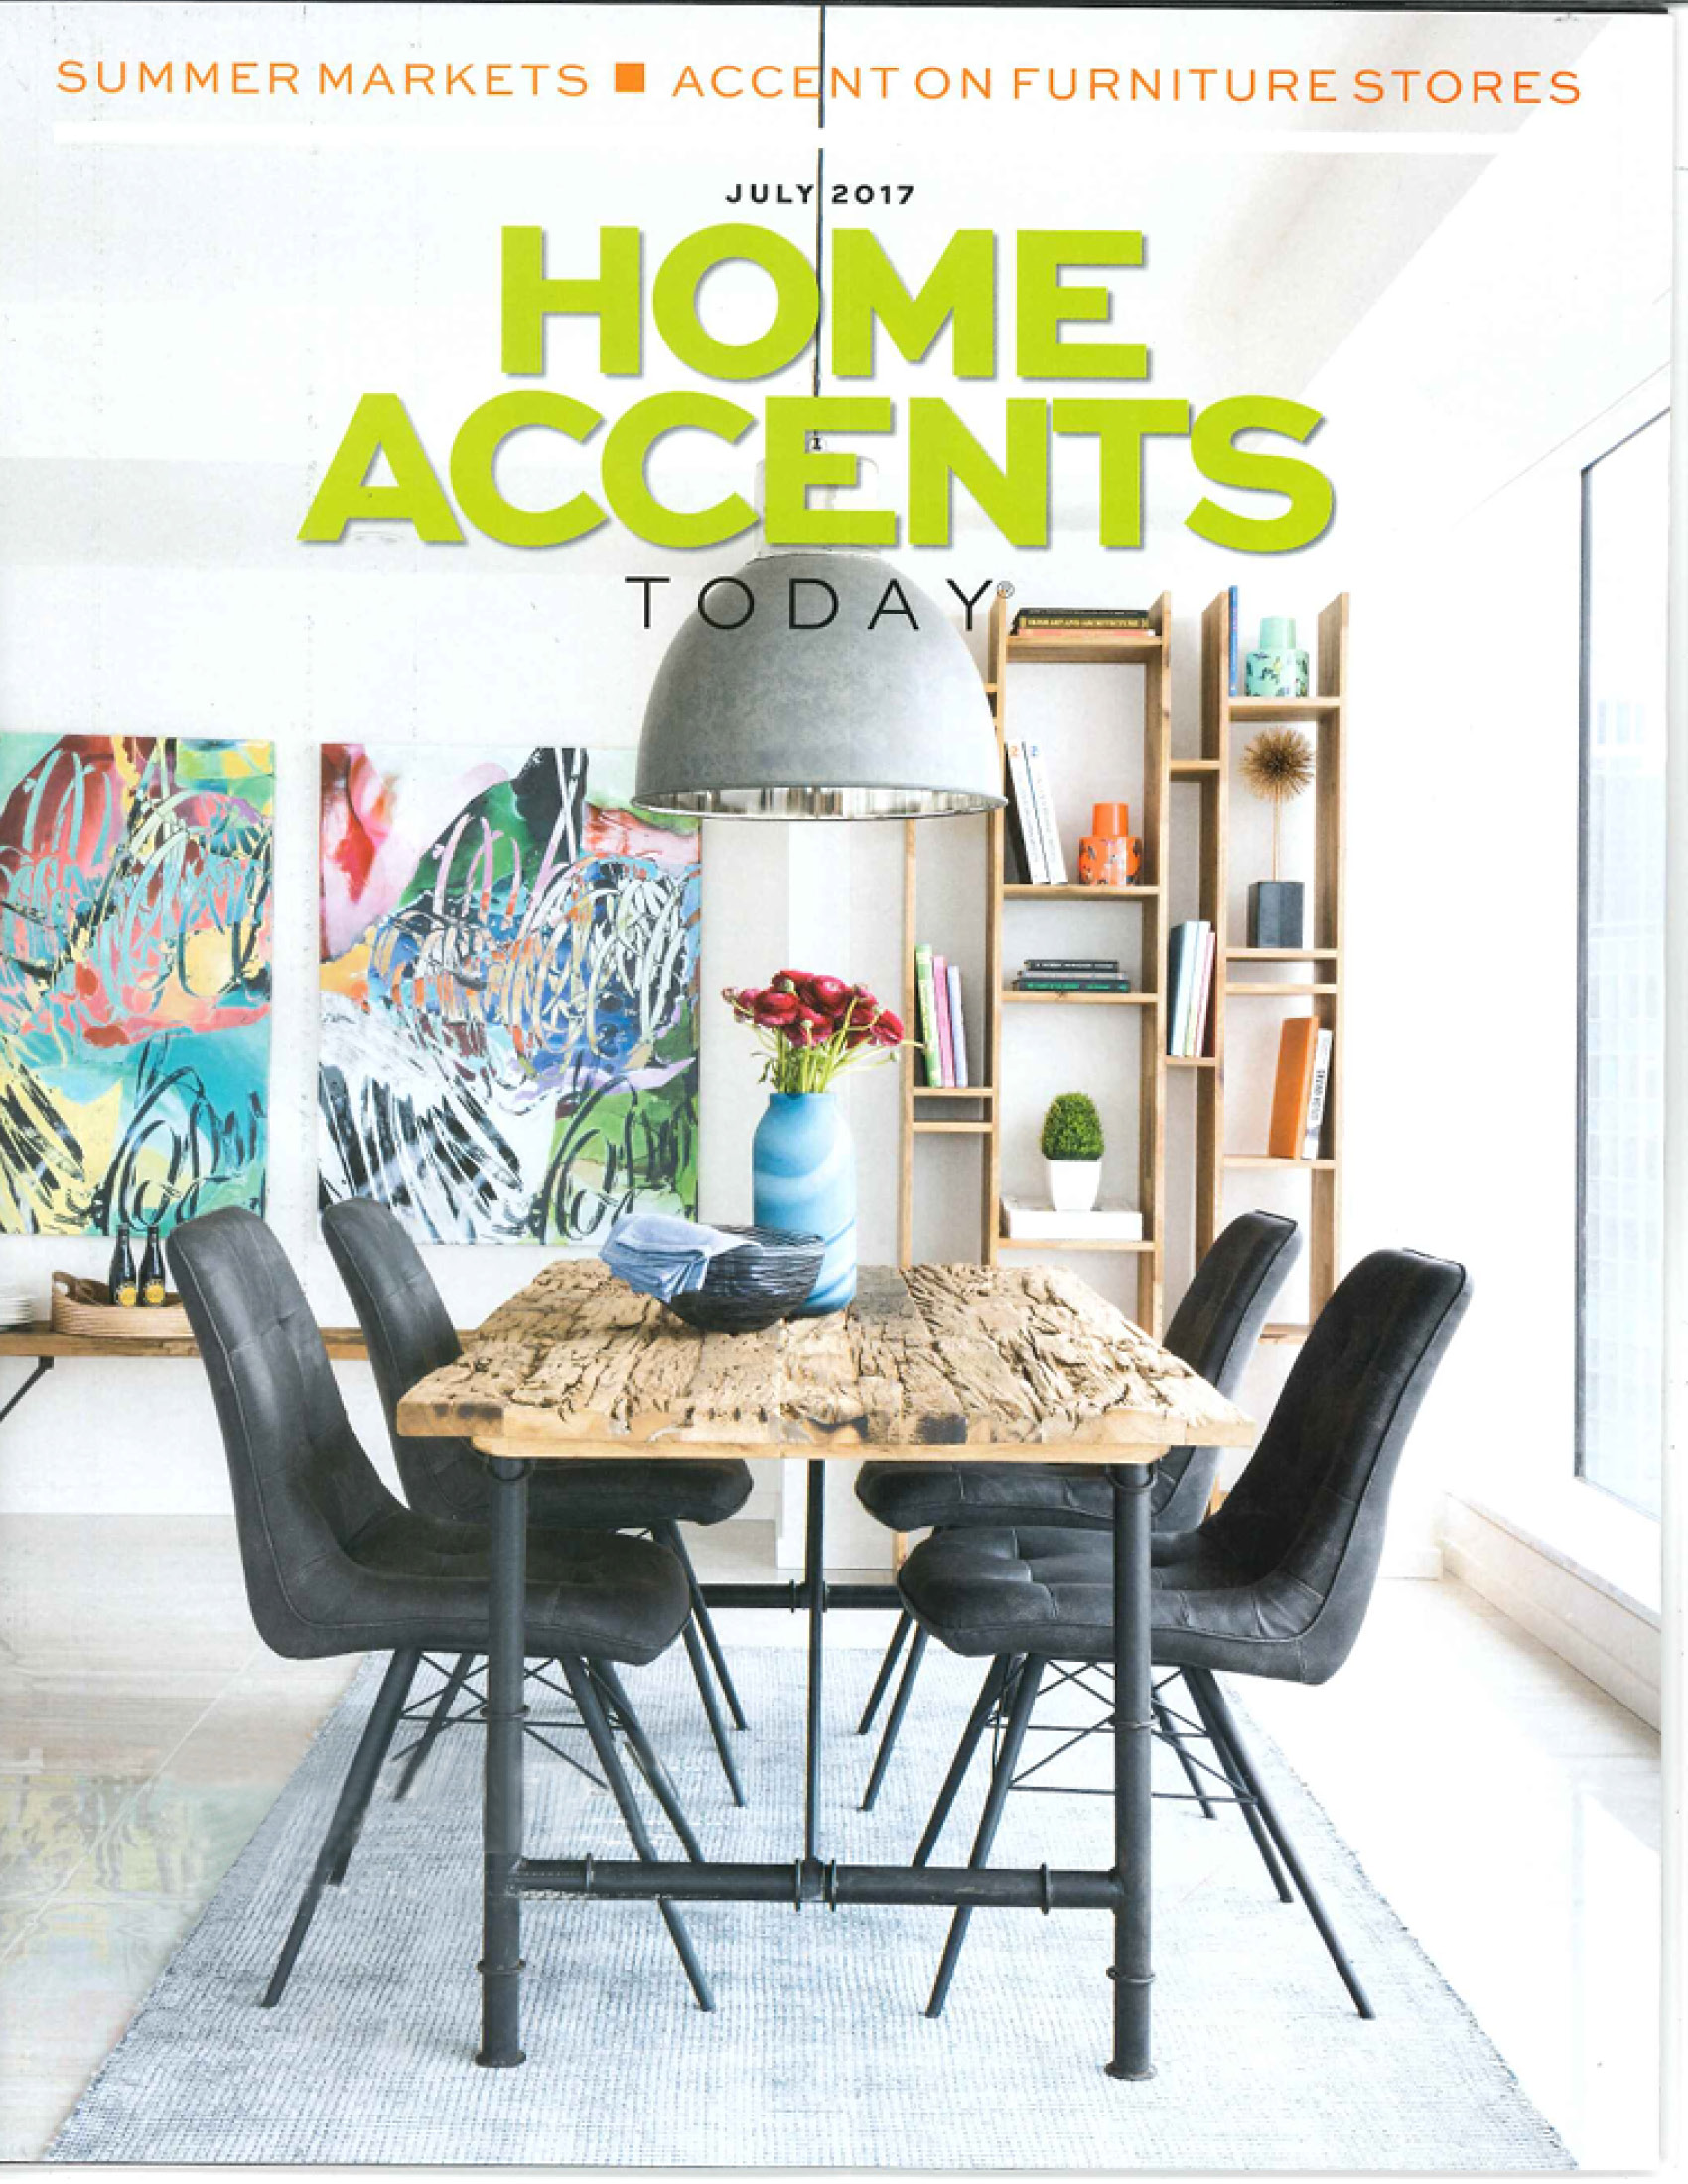 Home Accents Today, July 2017